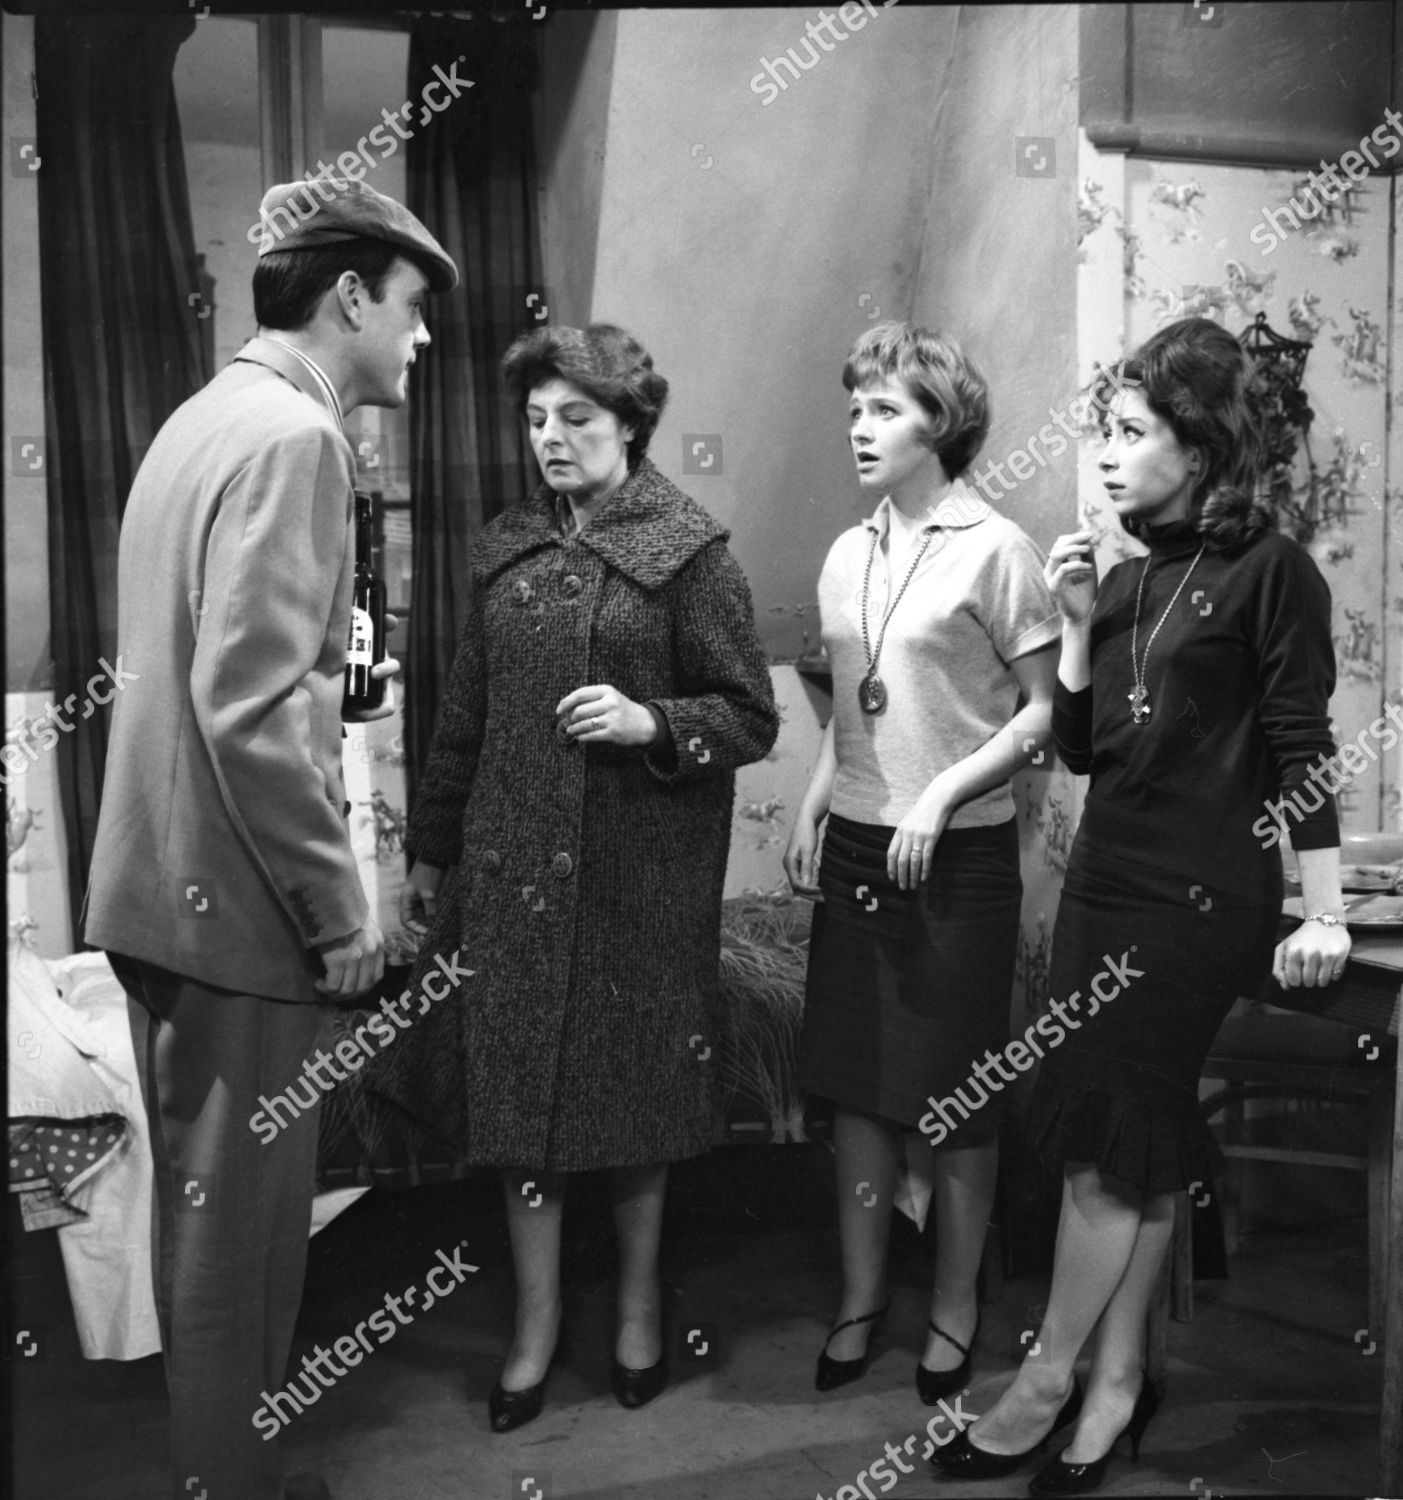 Communication on this topic: Yvette Mimieux, sheila-raynor/